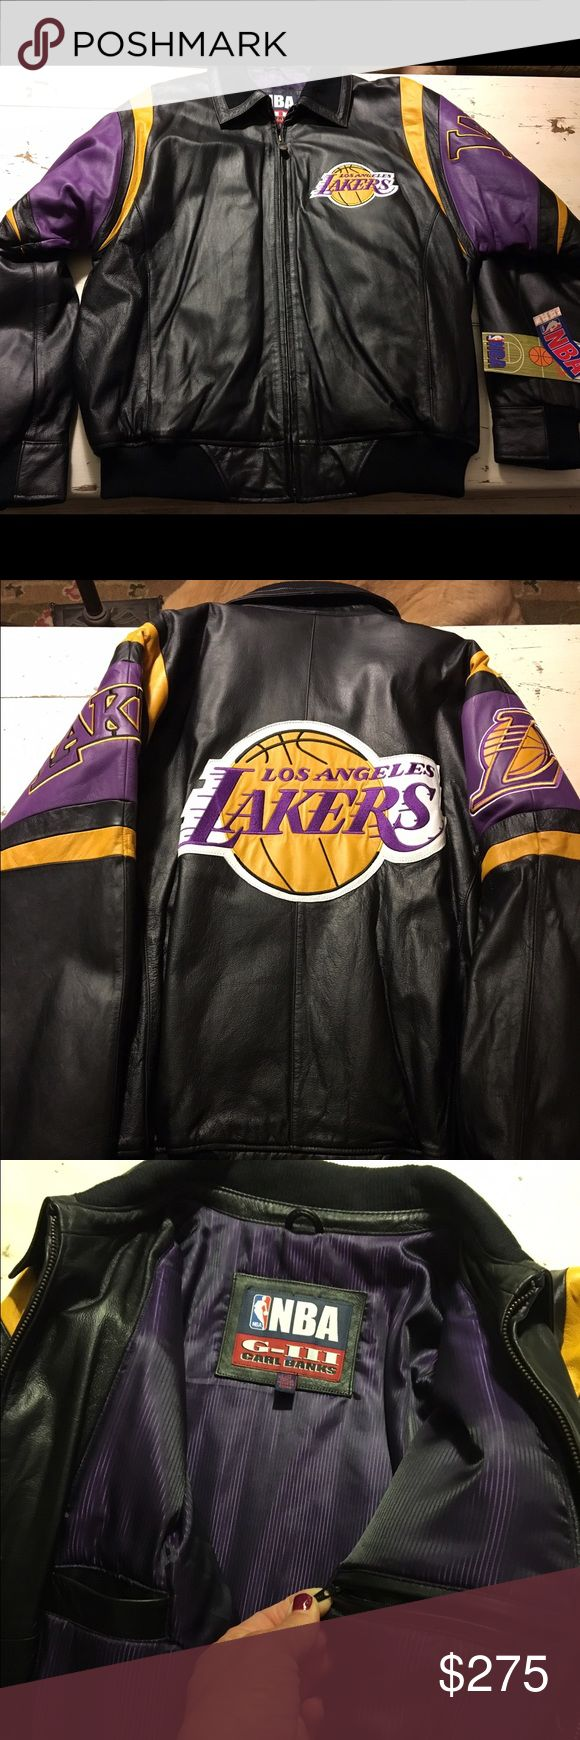 Leather Laker Jacket size large This is a gorgeous new with tags retro leather Lakers jacket with leather collar. There are two inside chest pockets, one with zipper.  The leather is thick as is the jacket with a bright purple lining.  It is a size large and the sleeves will comfortably fit someone with bigger arms.  This jacket is a beauty and was purchased for $335 with the original tag on it. The jacket has been held as a collectors item. NBA Jackets & Coats Bomber & Varsity